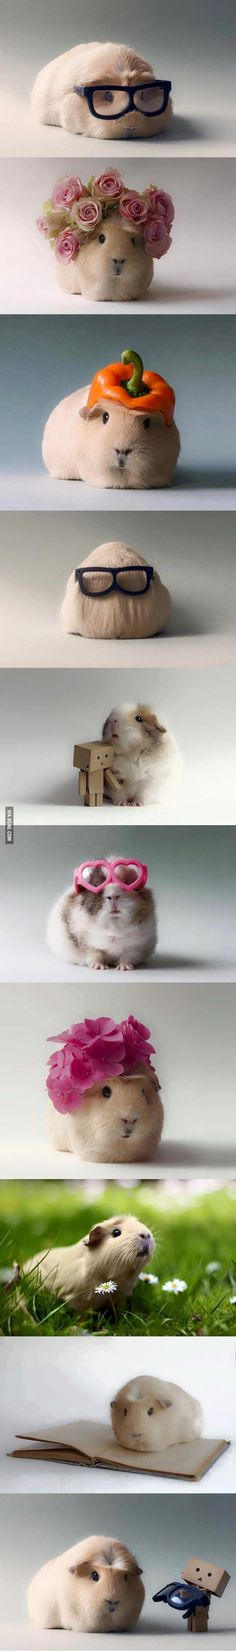 piggies with things on their heads! Having a bad day? These floofs will help you…